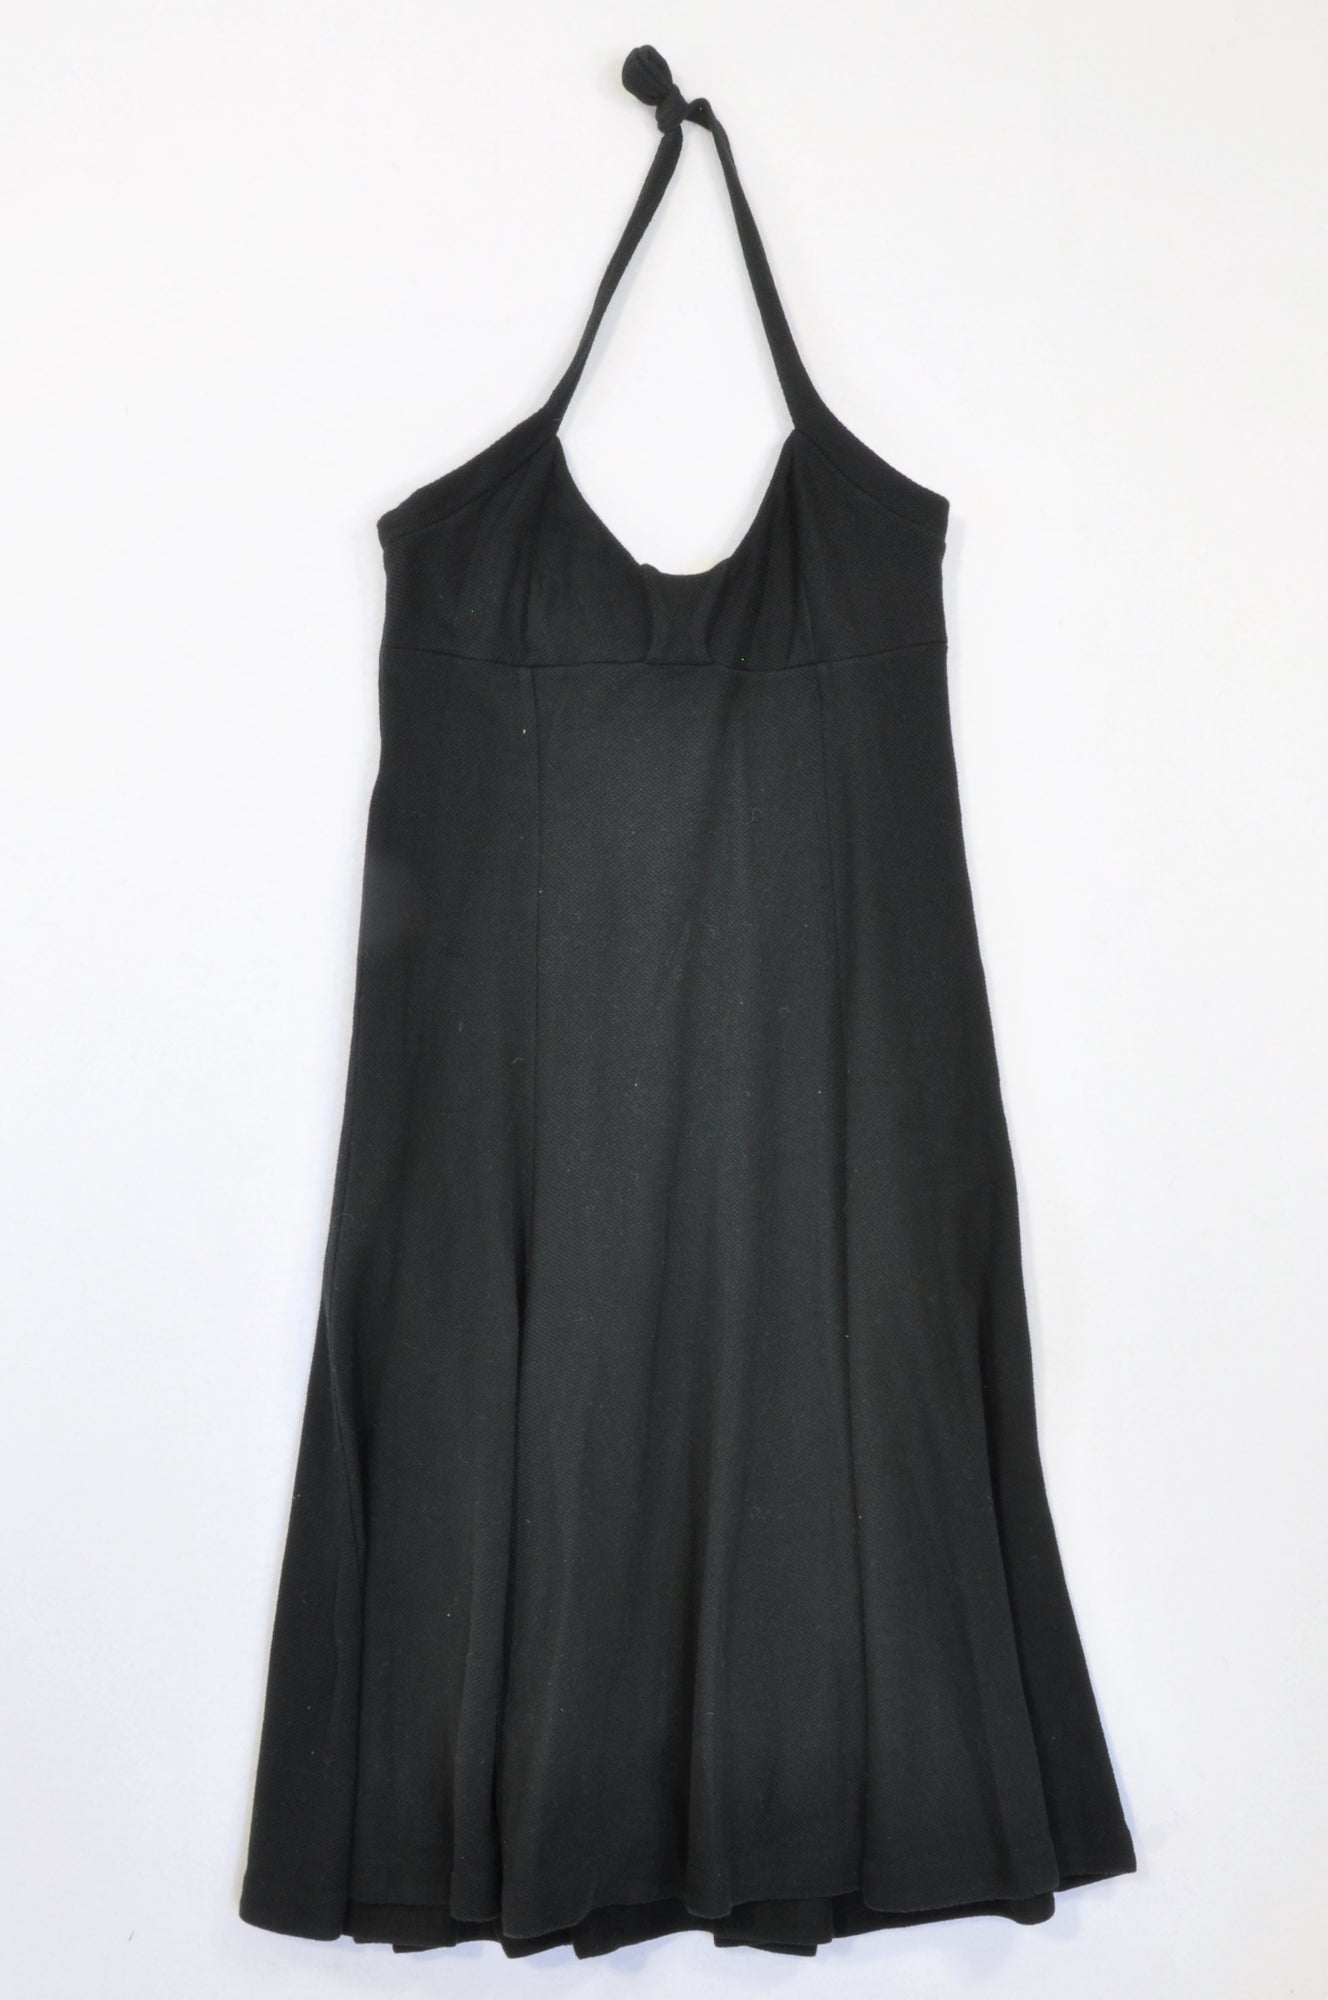 Mango Black Textured Halter Neck Dress Women Size S